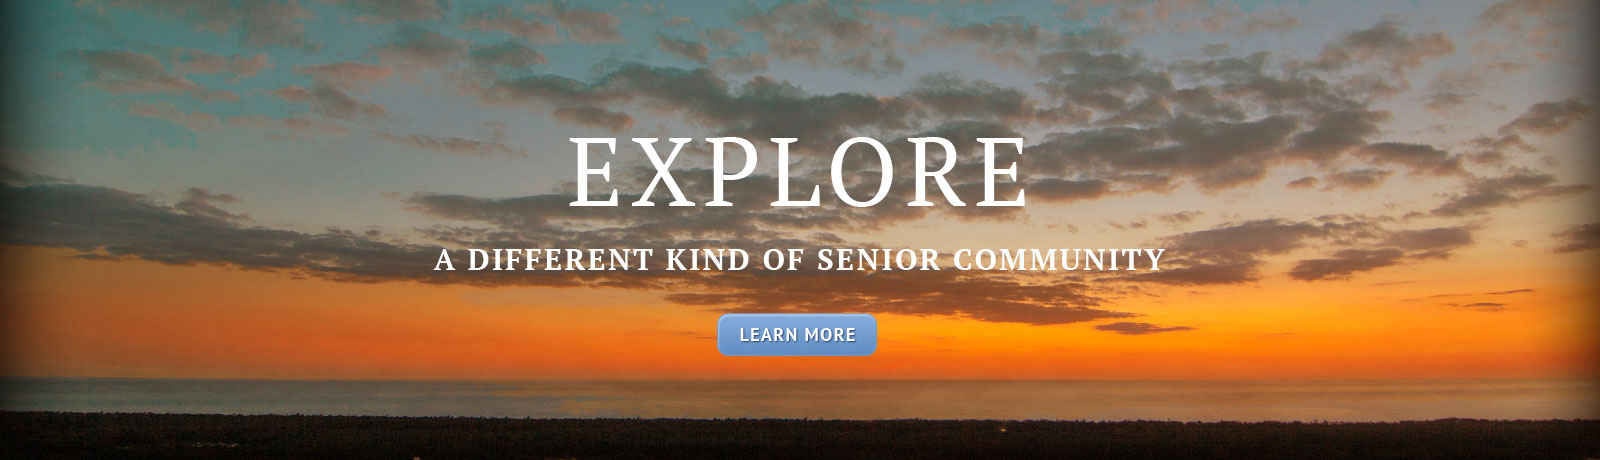 Explore a different kind of senior community